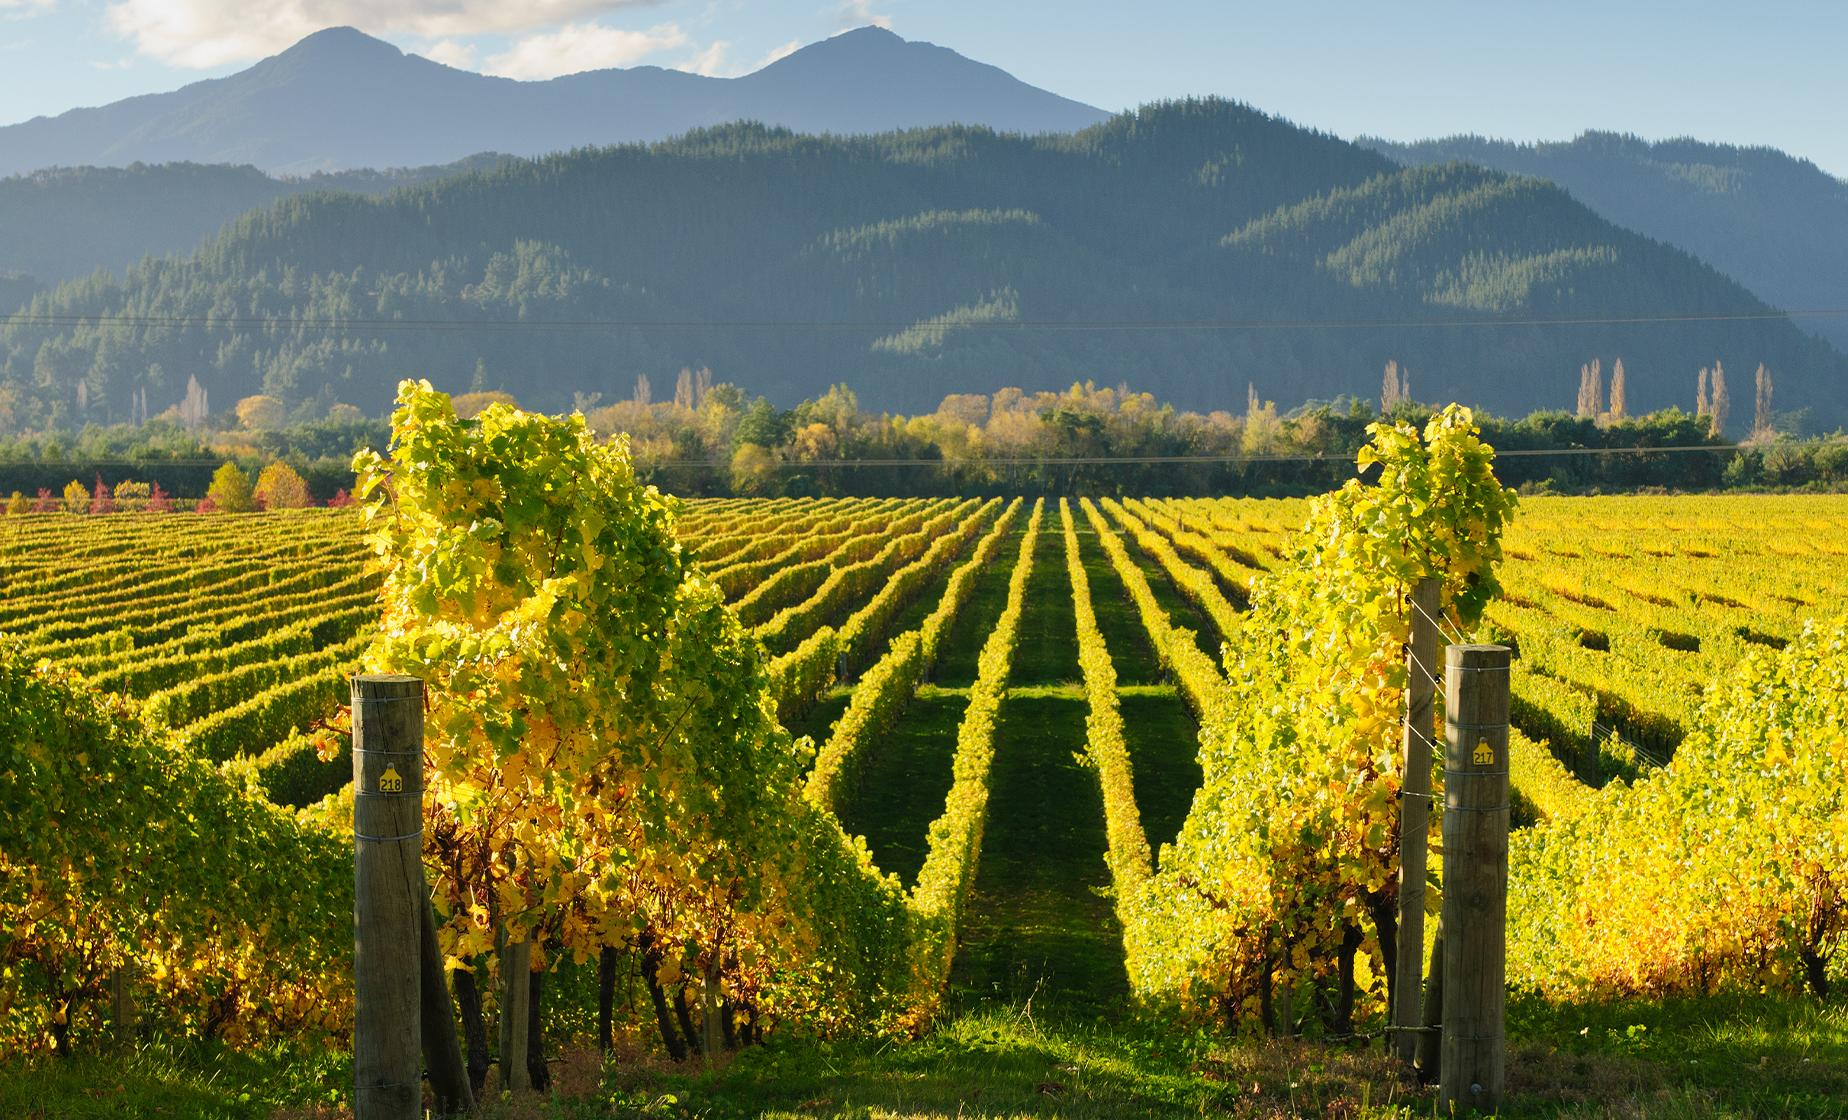 The Wines of Marlborough Tour